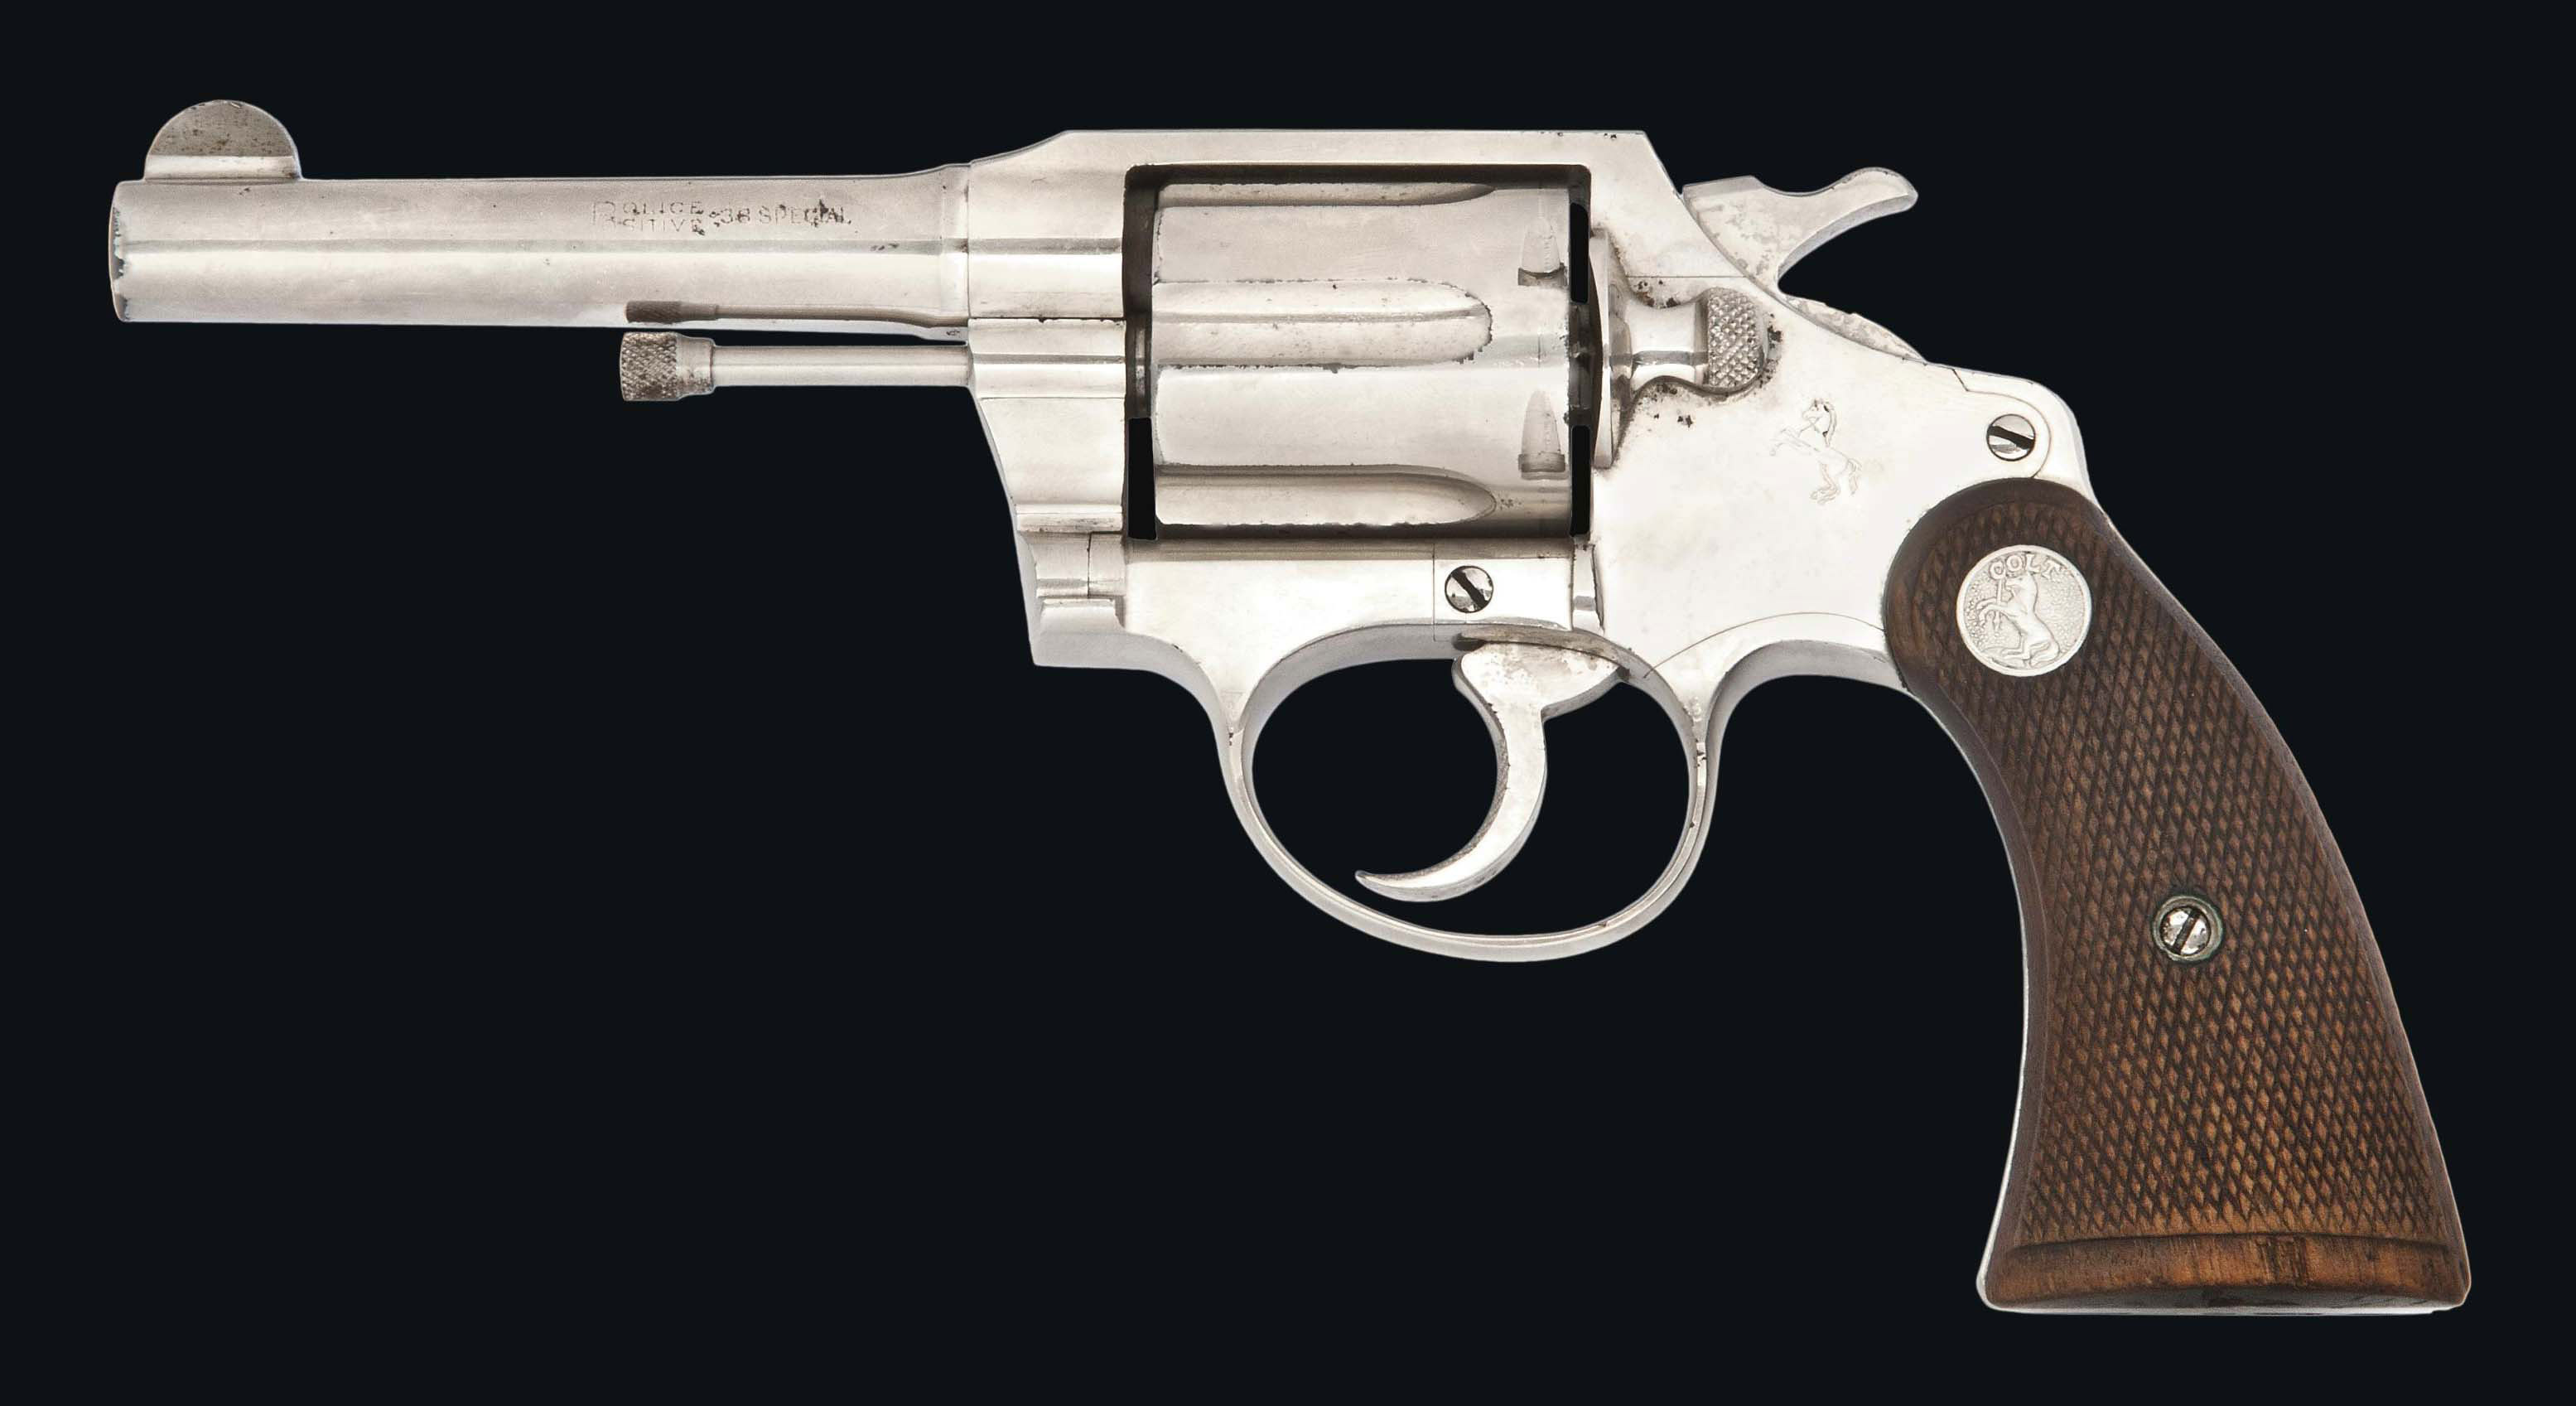 A .38 (SPECIAL) 'POLICE POSITIVE' NICKEL-PLATED SIX-SHOT DOUBLE-ACTION REVOLVER